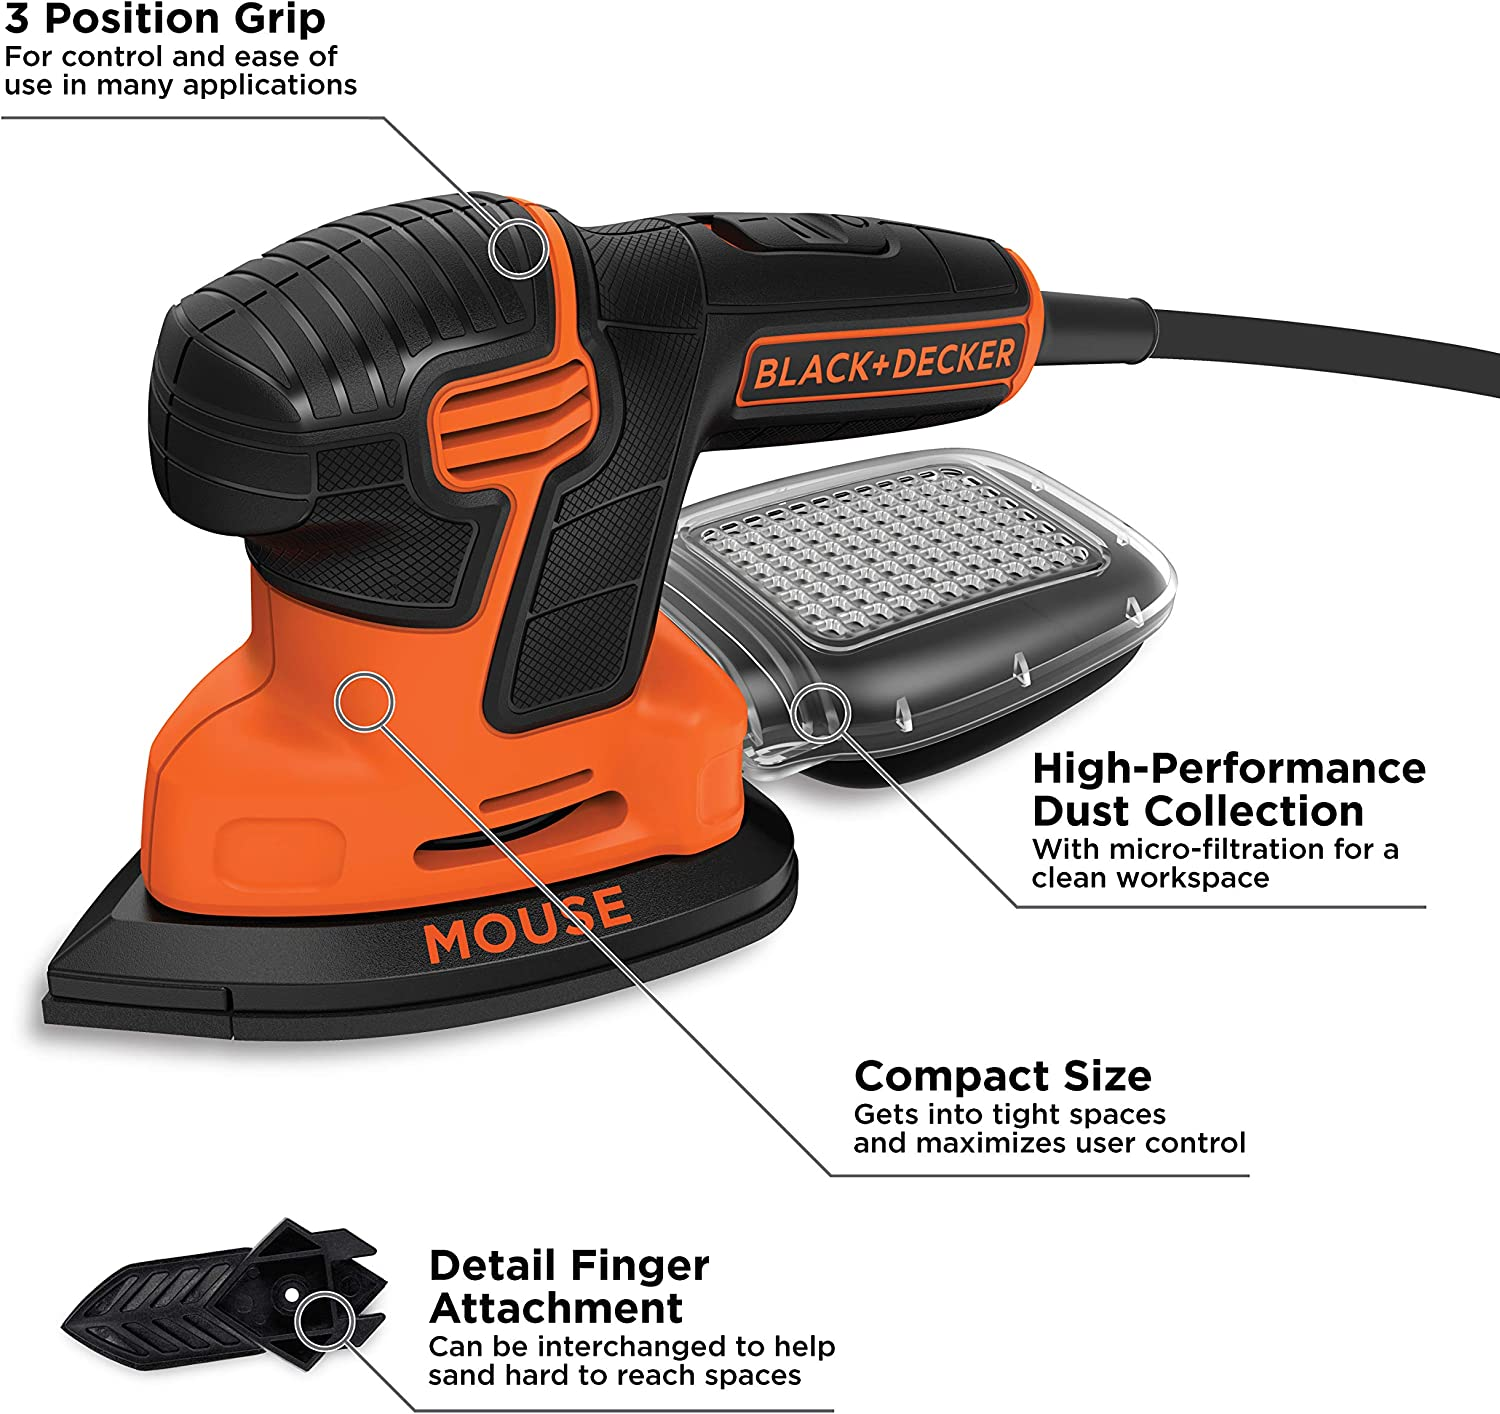 BLACK+DECKER BDEMS600 product image 2